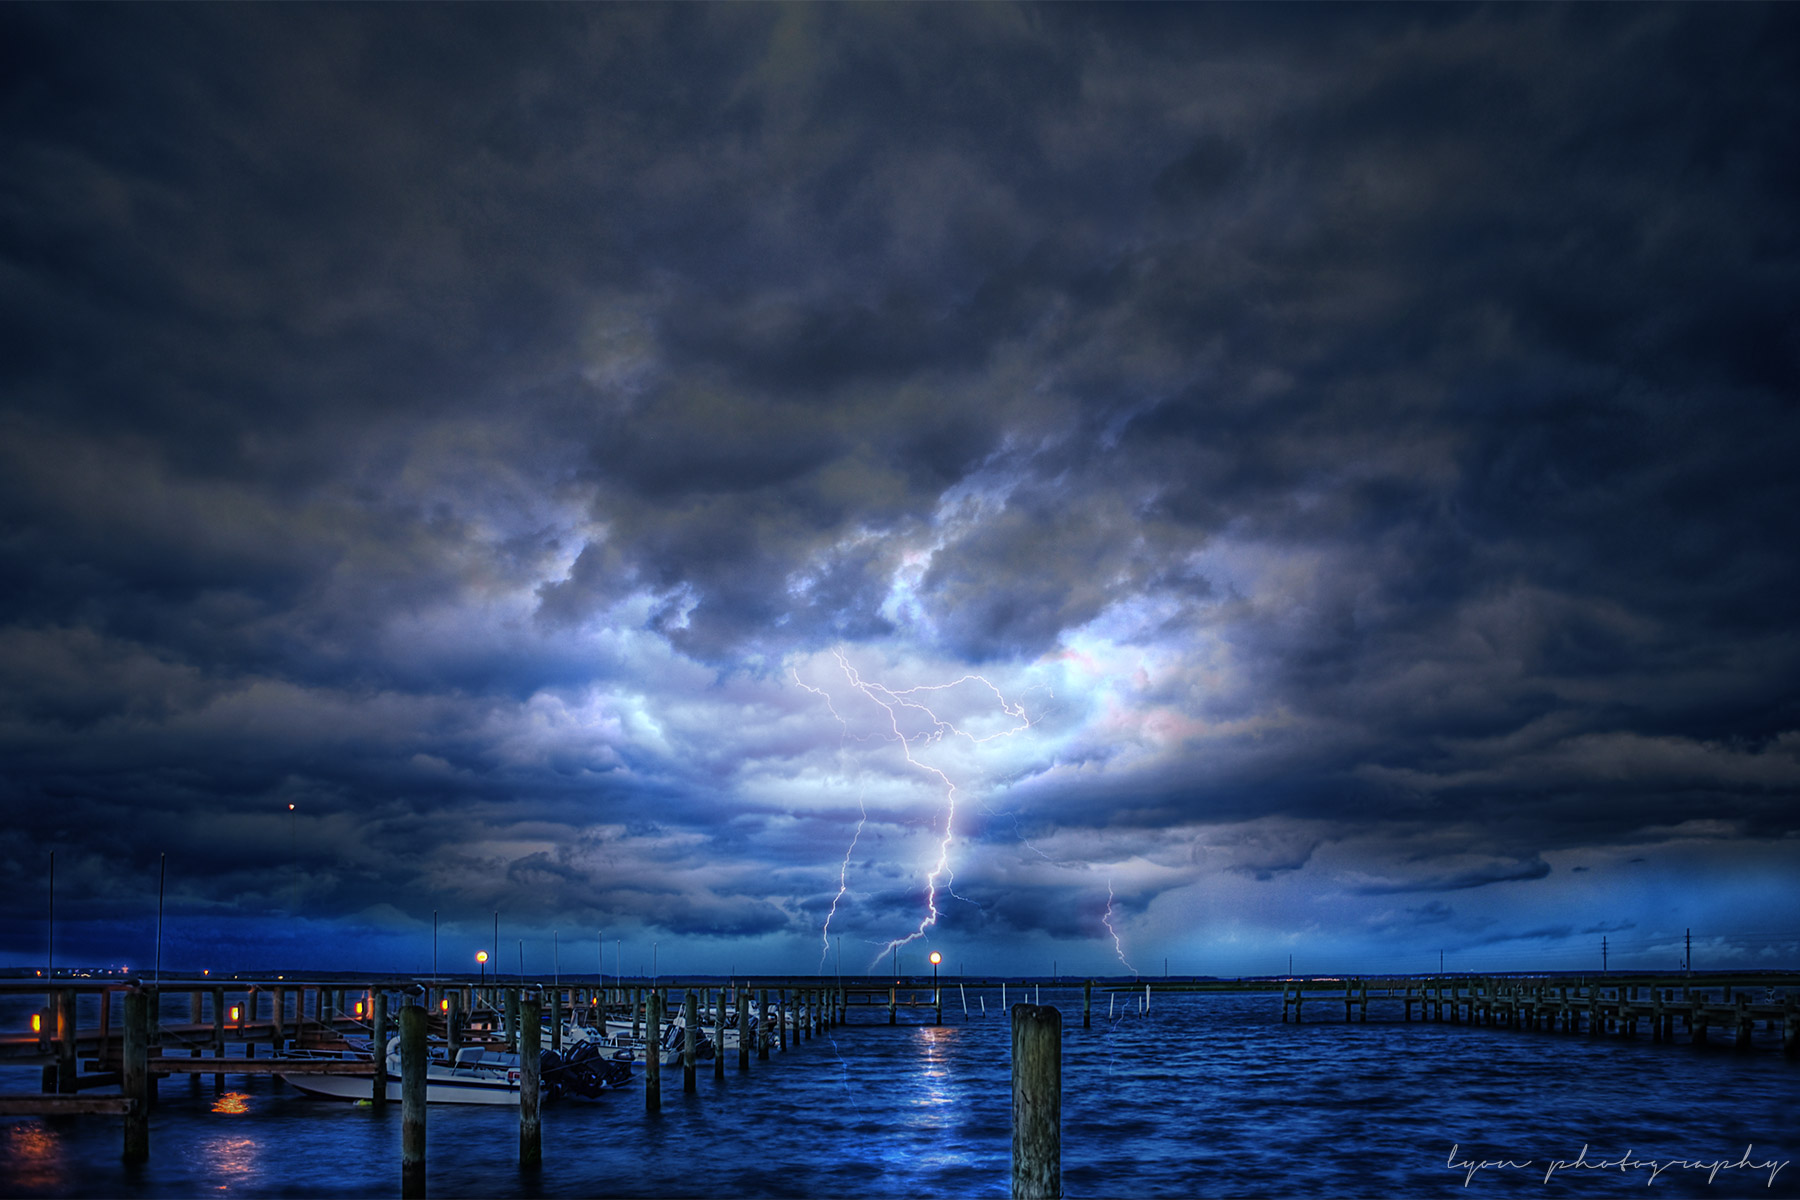 Lyon_Photography-chincoteague_storm